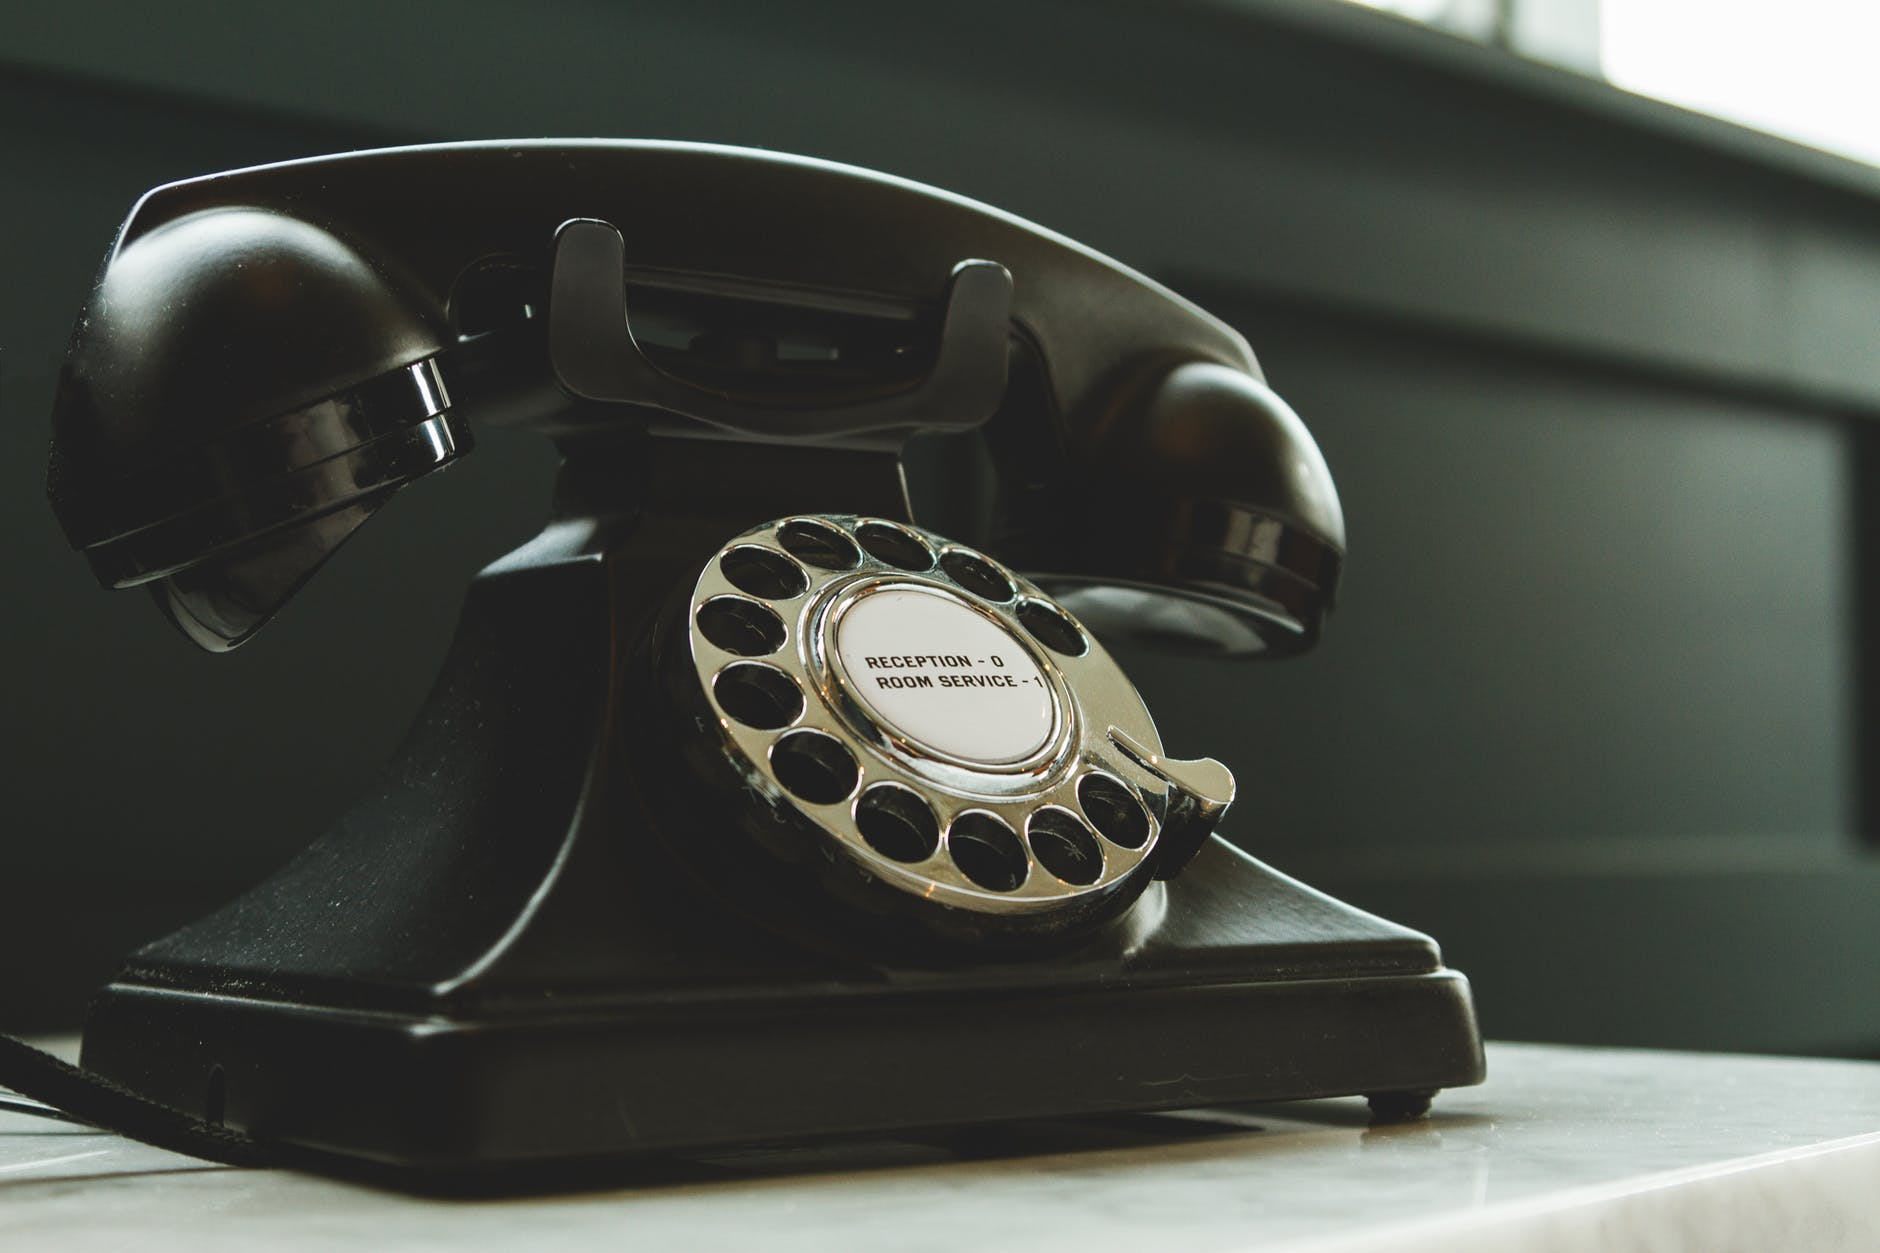 black rotary telephone on white surface - Contact